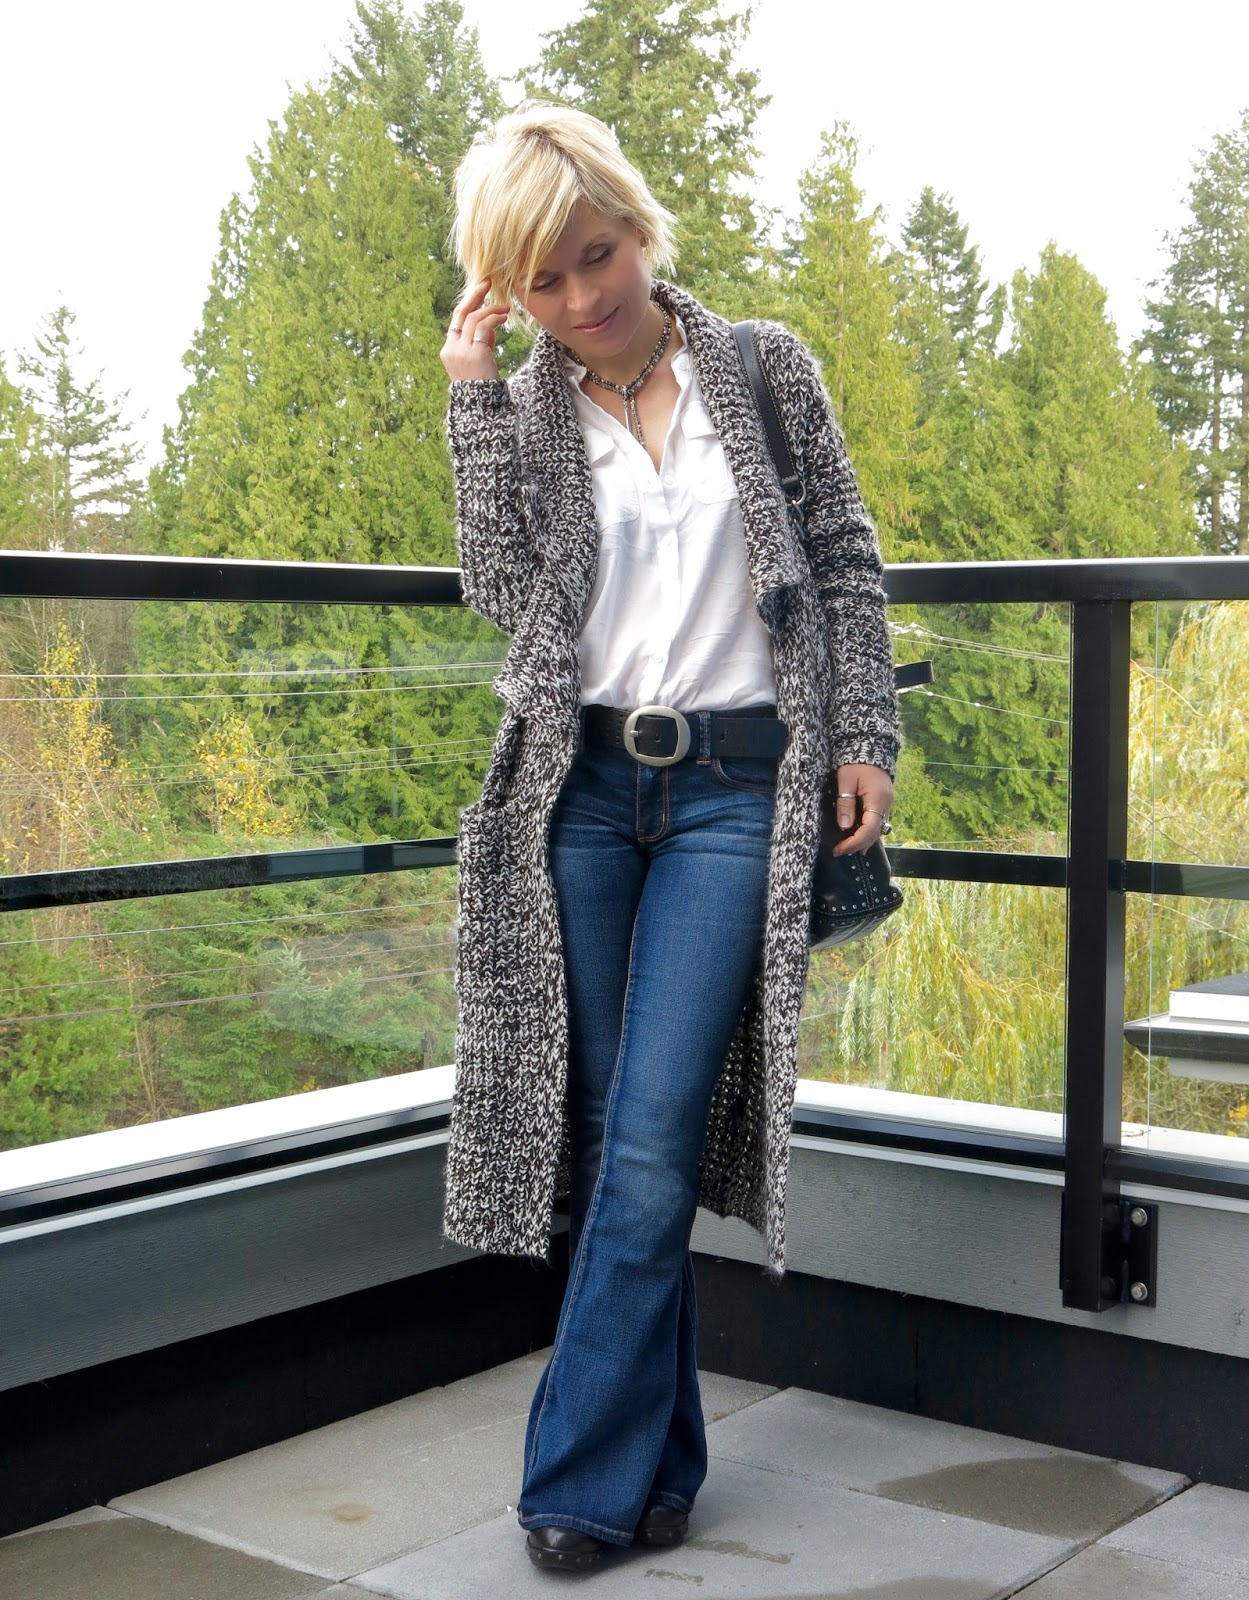 Tech talk: flare jeans, white shirt, and a cardigan coat ...